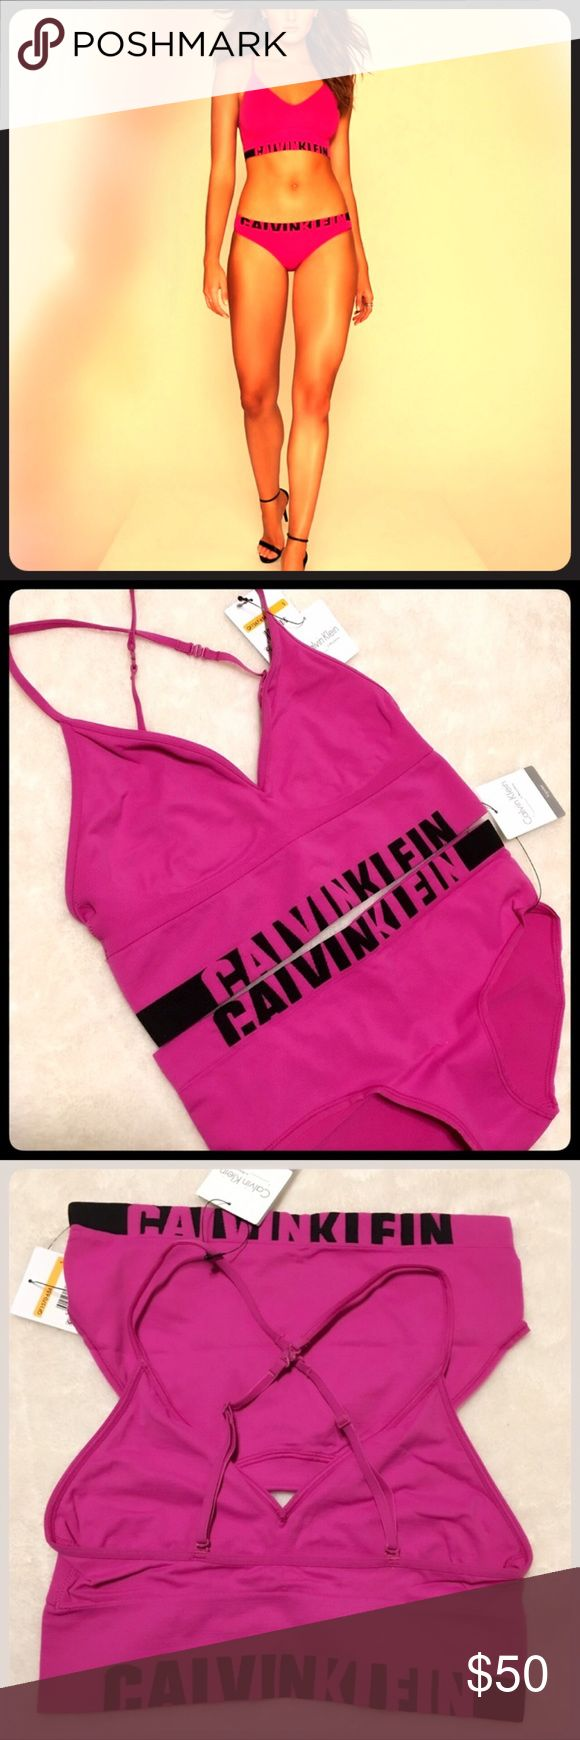 cK Long Line Bralette hipster bikini panty set NWT Authentic Calvin Klein Long Line multiway convertible Bralette. Fully adjustable. Matching bikini logo underwear. Please see other listings for more sizes and styles.  Thanks:) :) Calvin Klein Intimates & Sleepwear